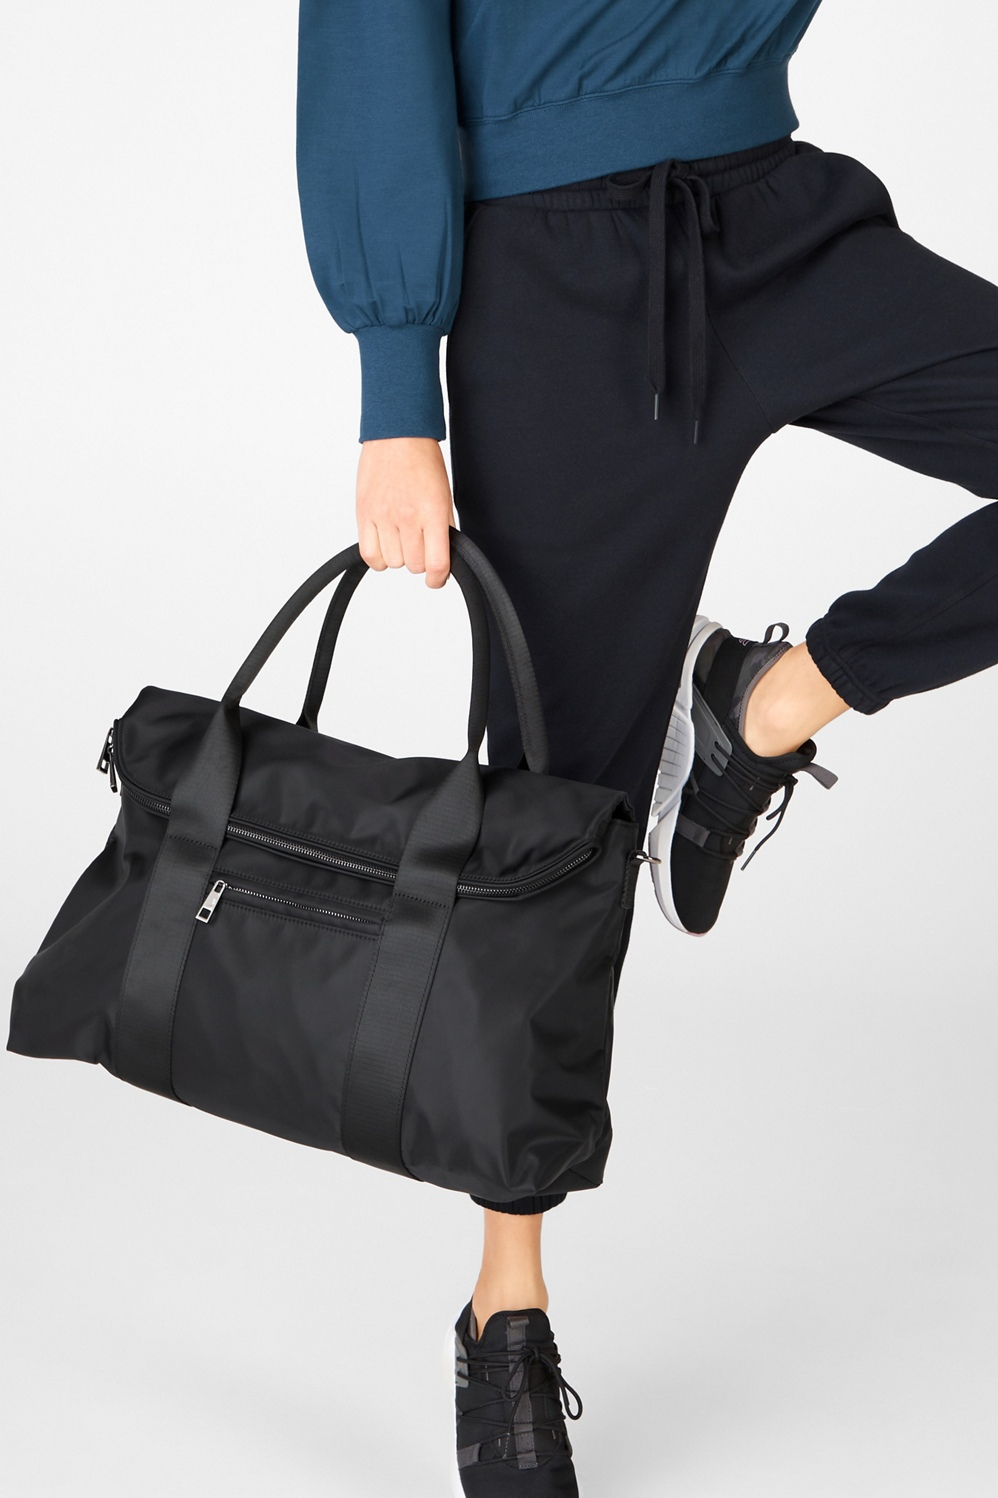 You asked, we listened. Our customer-favorite tote is back and better than ever with a front pocket to stash your stuff on the go. And that means life just got a little bit easier.